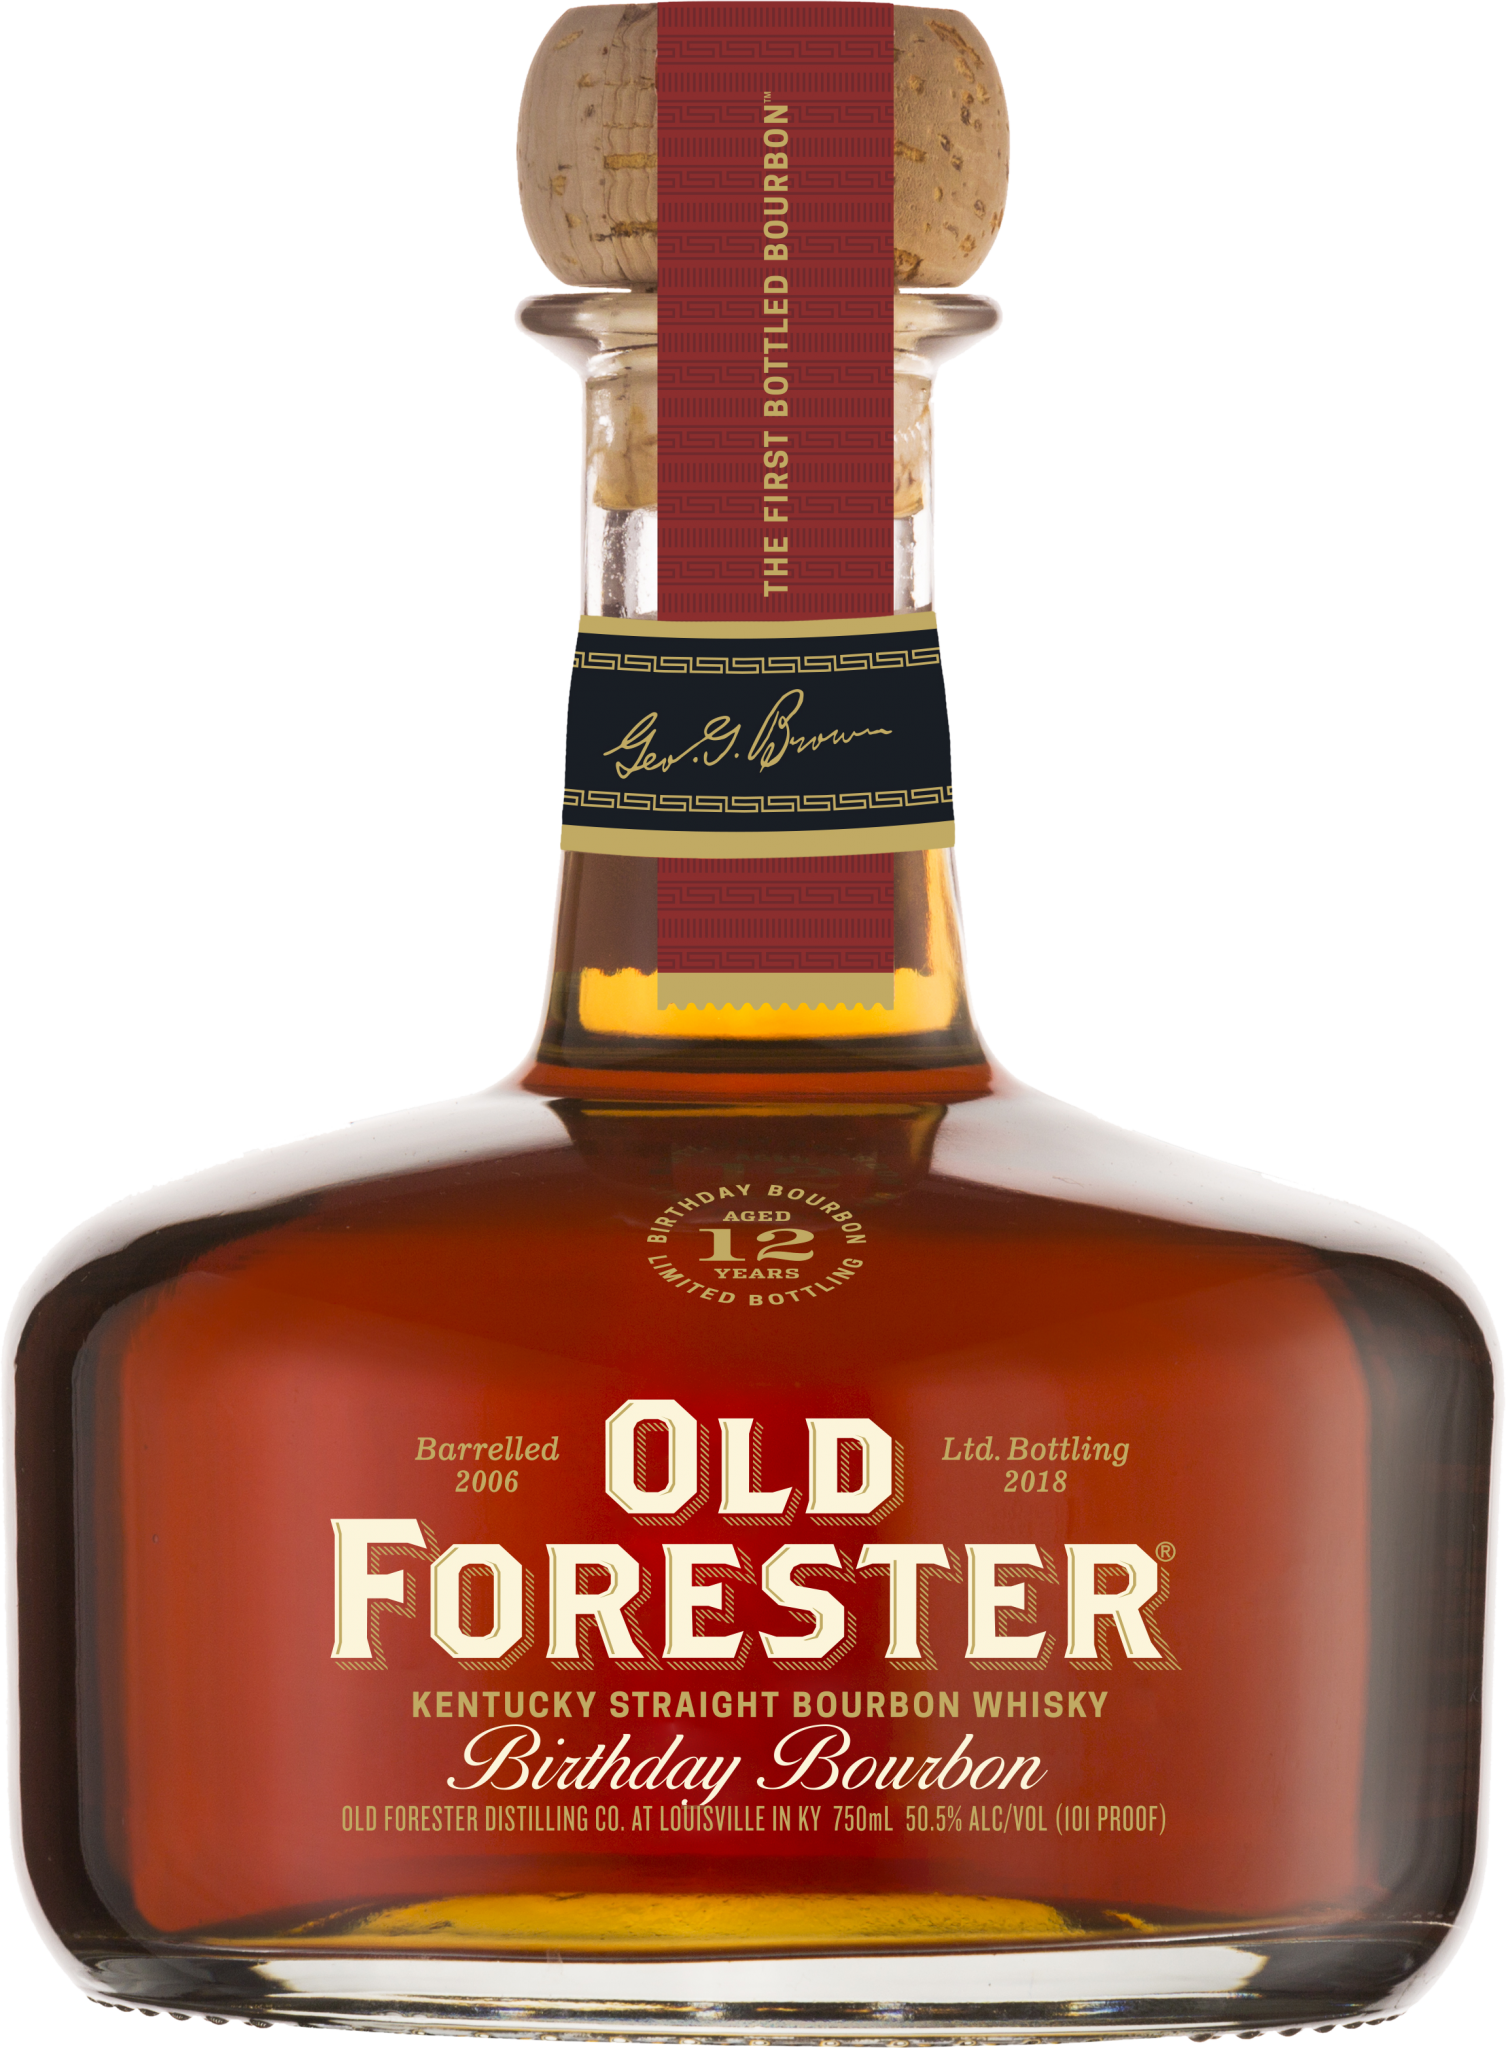 A bottle of Old Forester 2018 Birthday Bourbon on a black background.